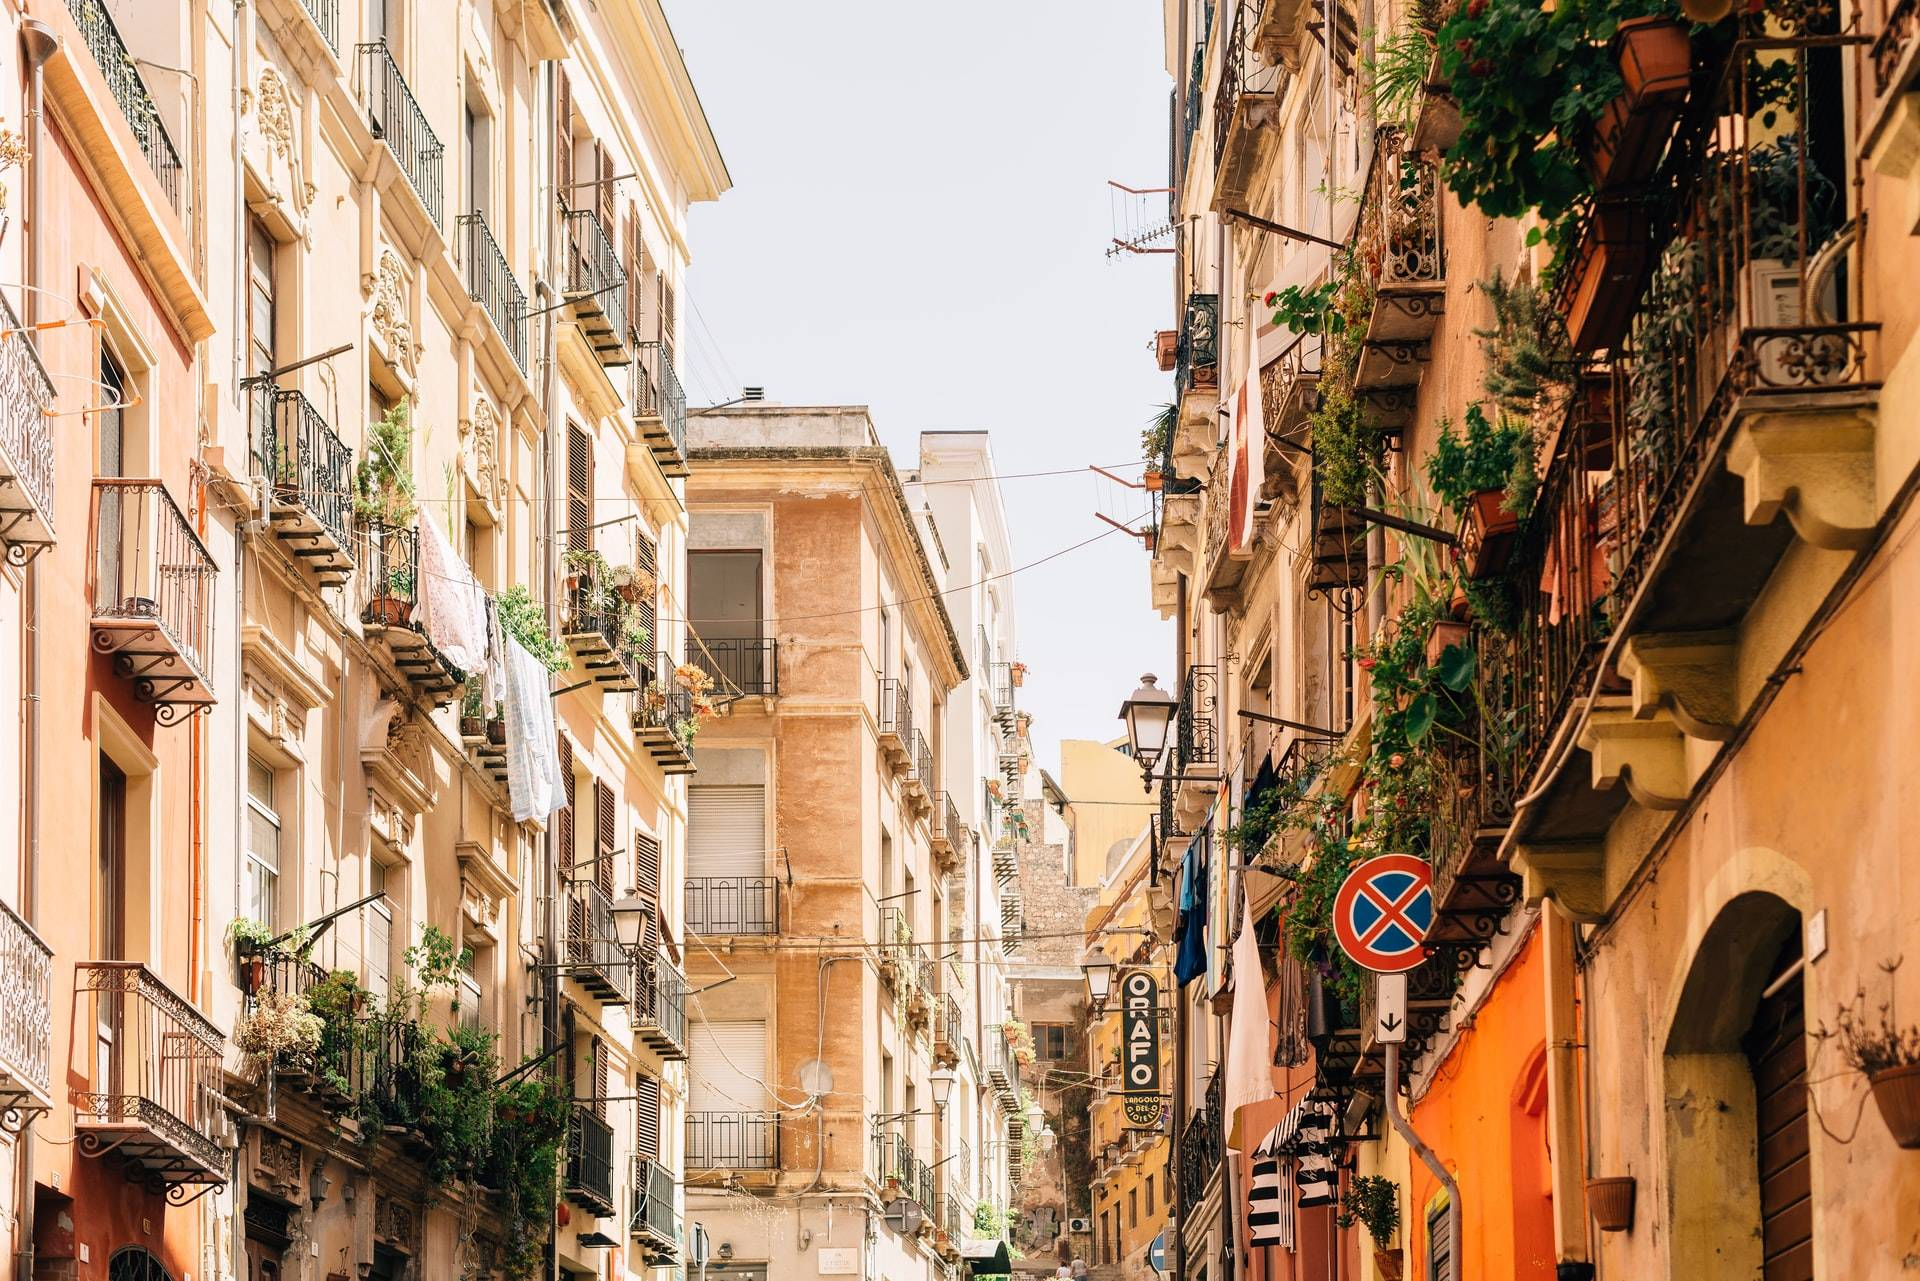 What to see in Cagliari, Sardinia Italy